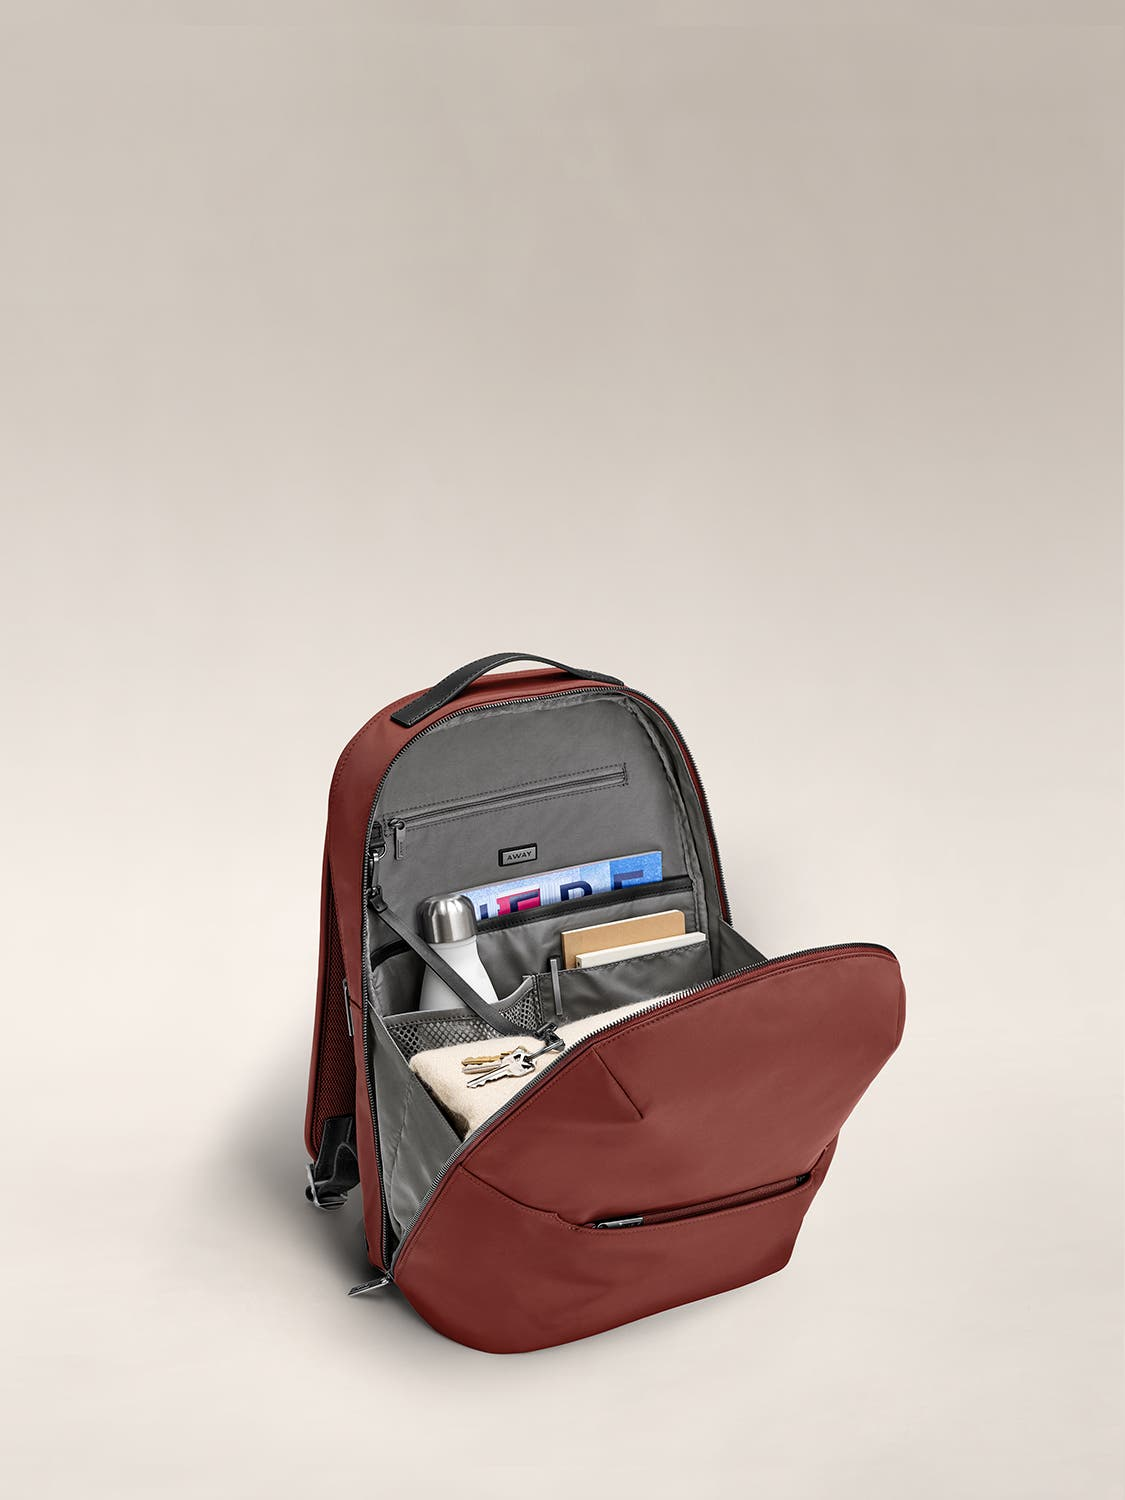 Inside view of brick red backpack with grey lining showing travel accessories packed and organized in the various pockets.